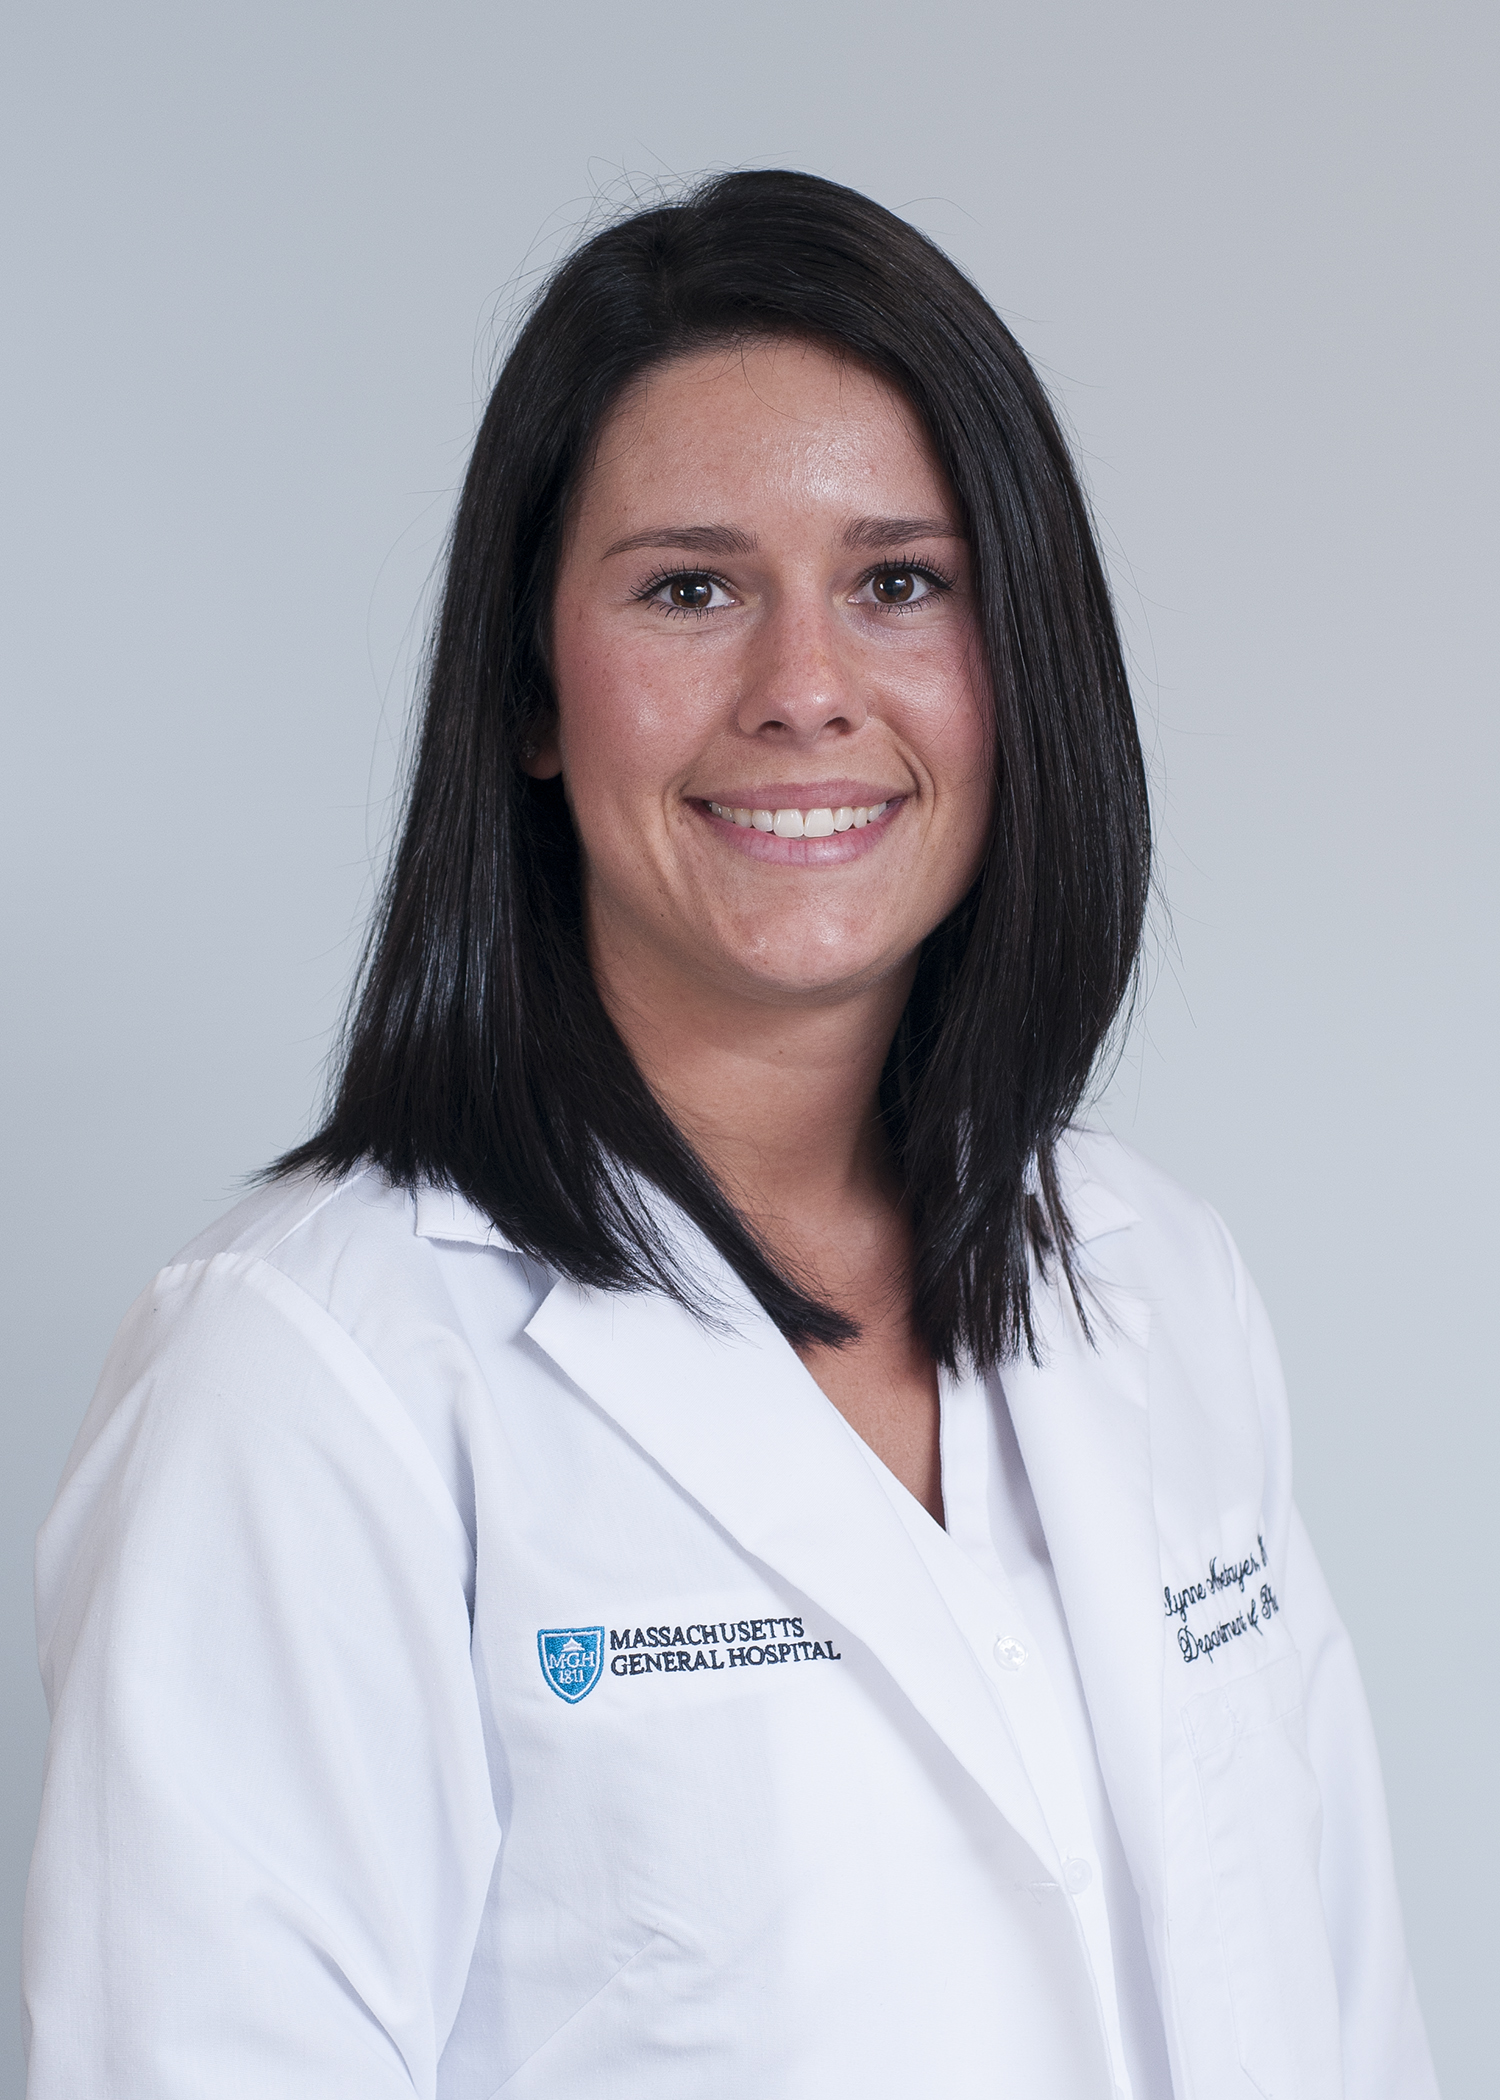 Q&A with a Cardiology PGY-2 Pharmacy Resident